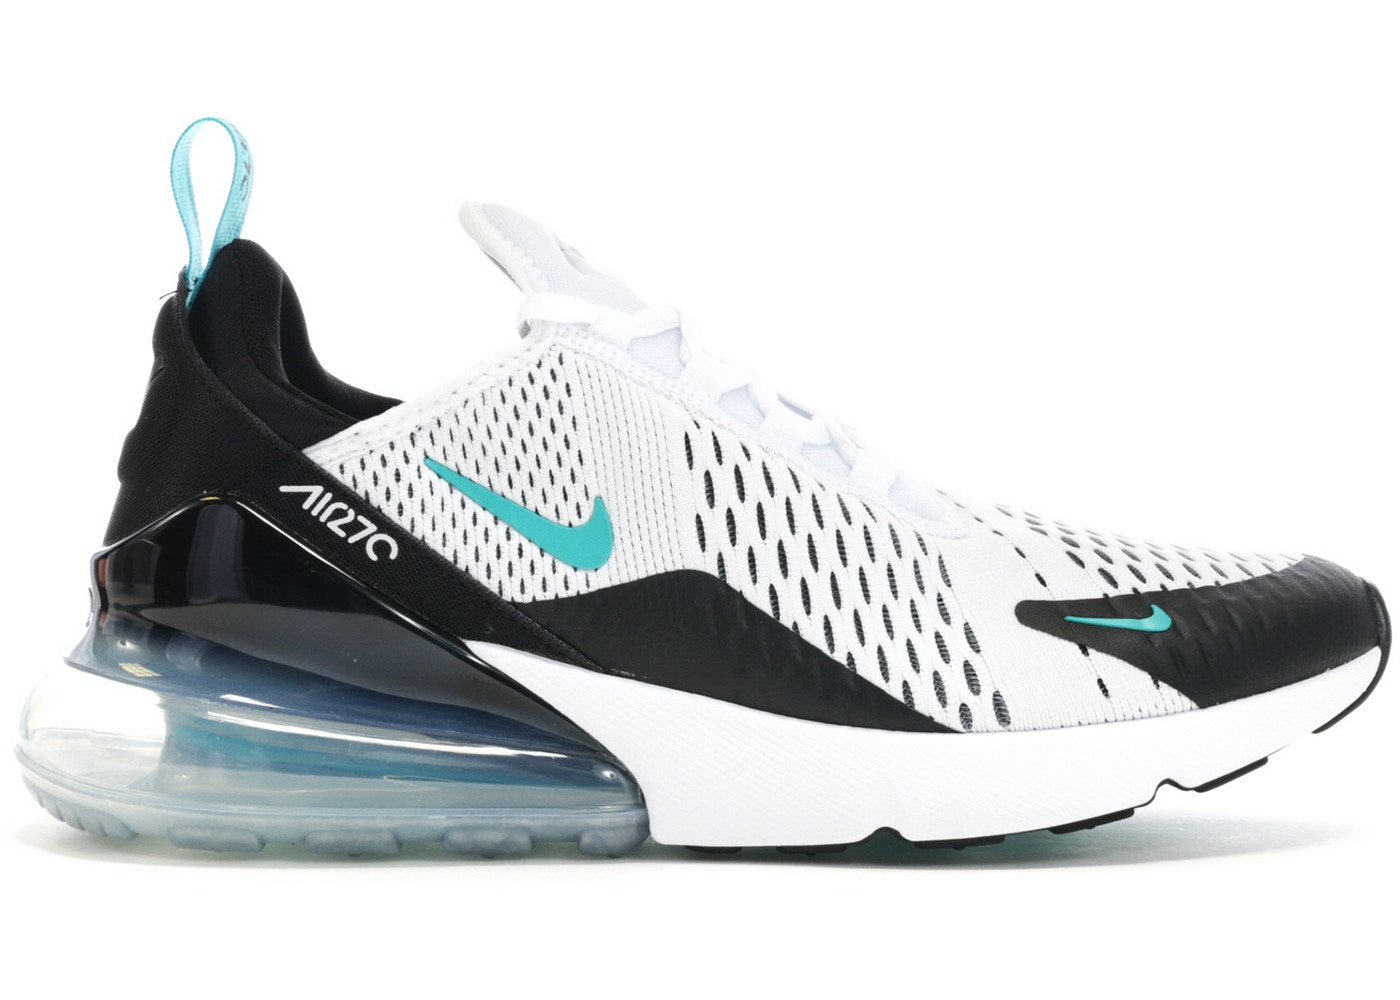 the best attitude 9cd34 b8bdc Air Max 270 Dusty Cactus